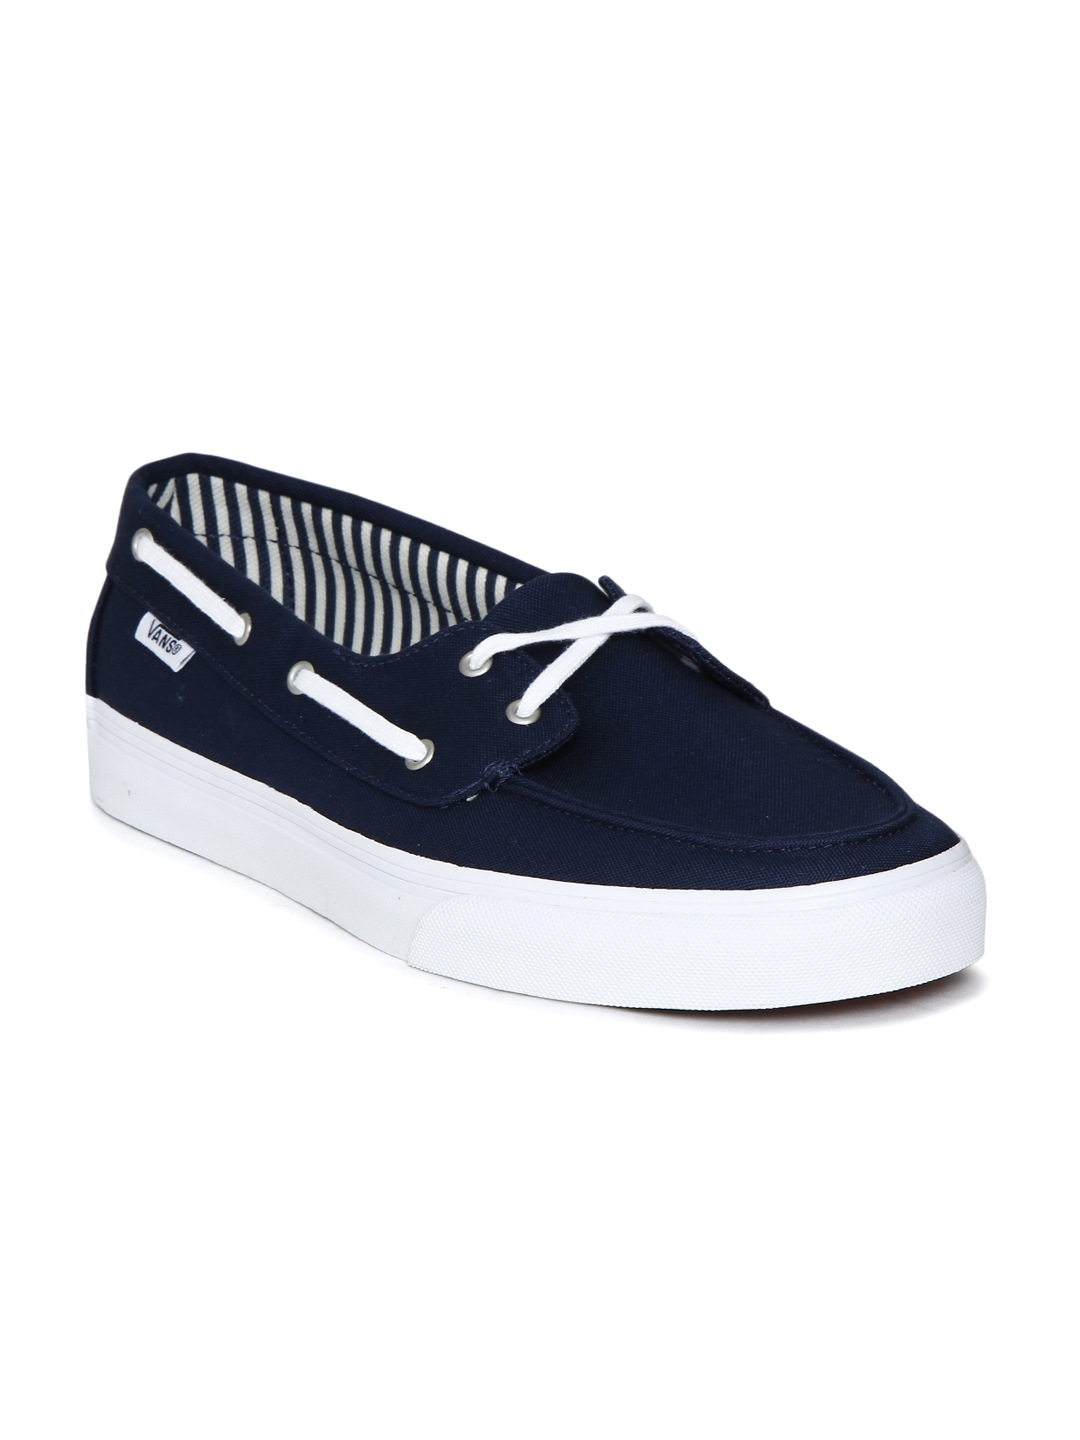 e9c96be3e1e Buy Vans Women Navy Blue Solid Chauffette SF Boat Shoes - Casual ...